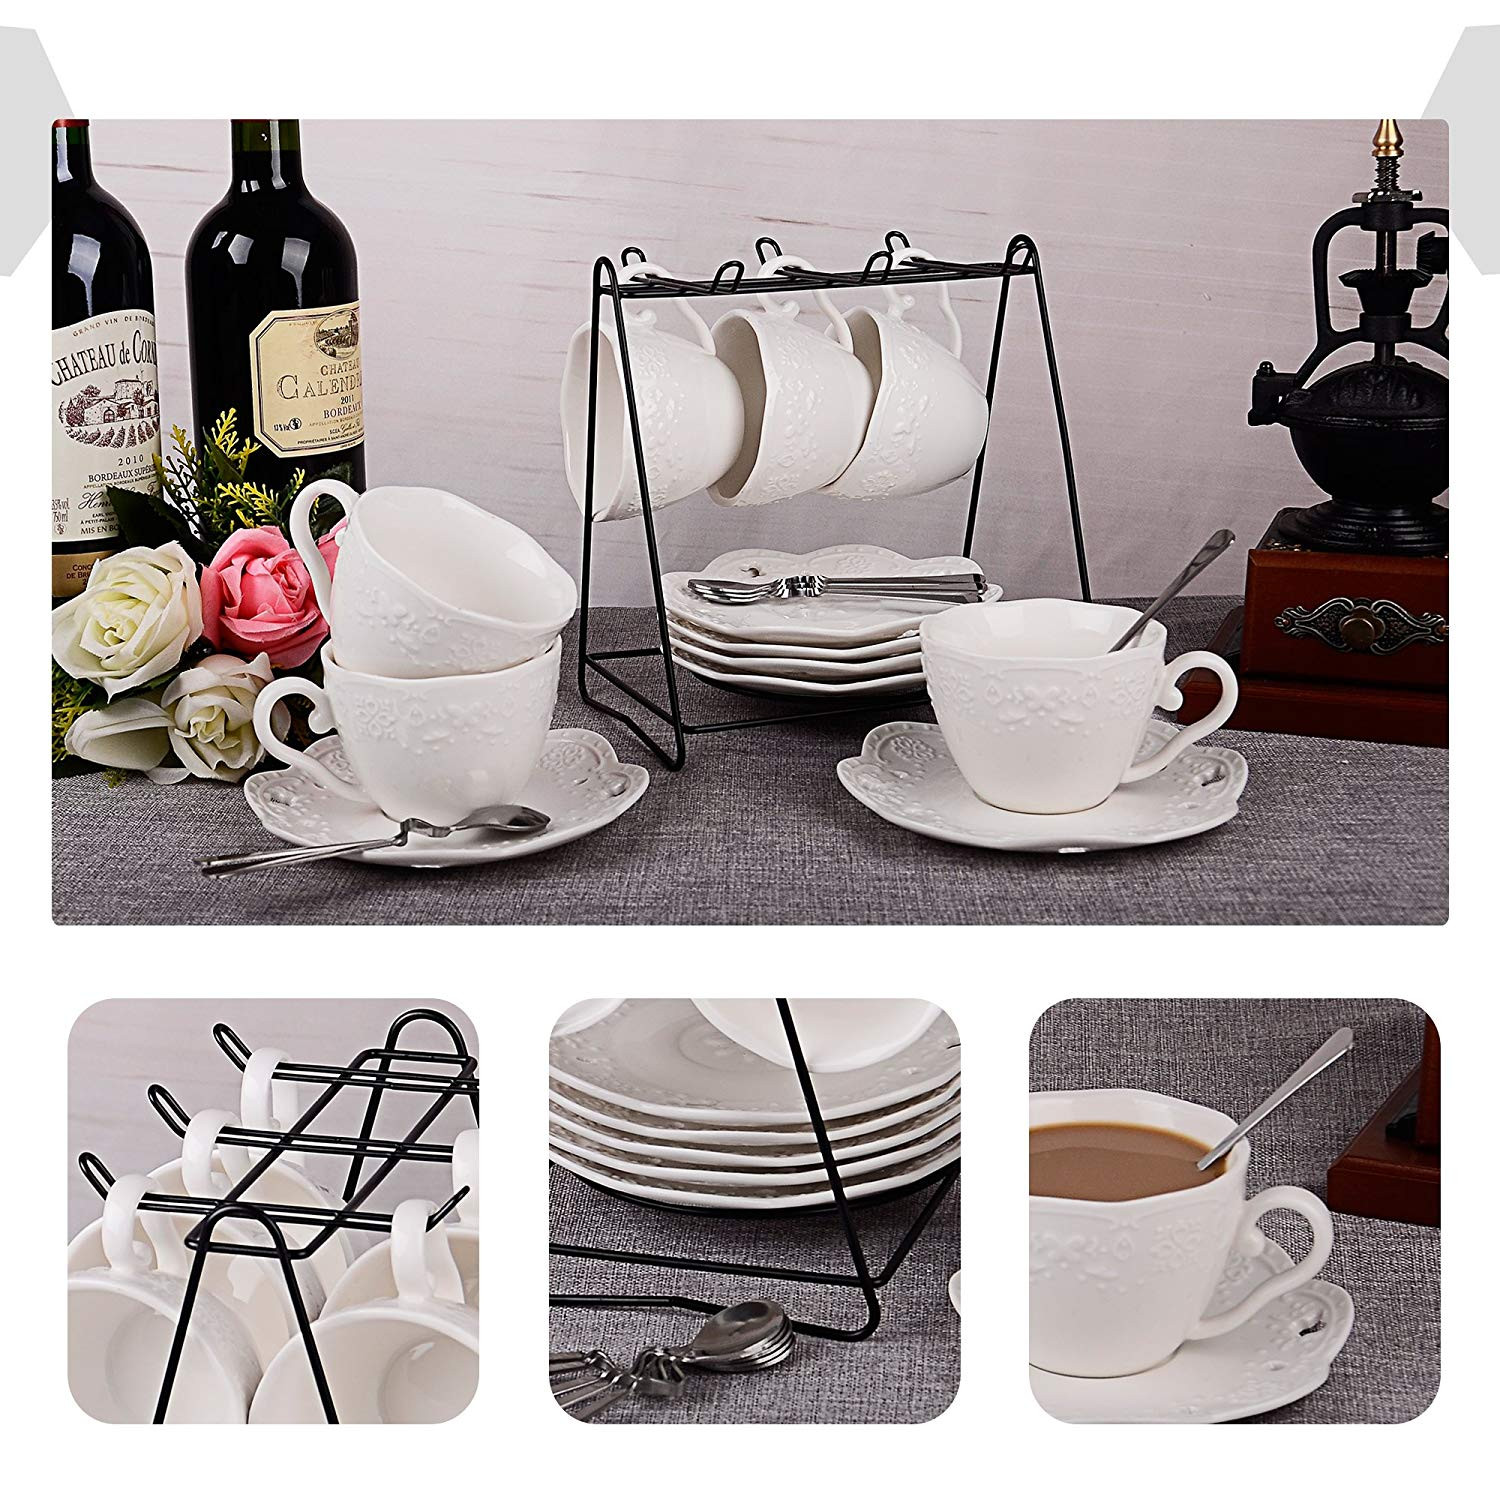 New Shining Image Porcelain Tea Cup And Saucer Coffee Cup Set With